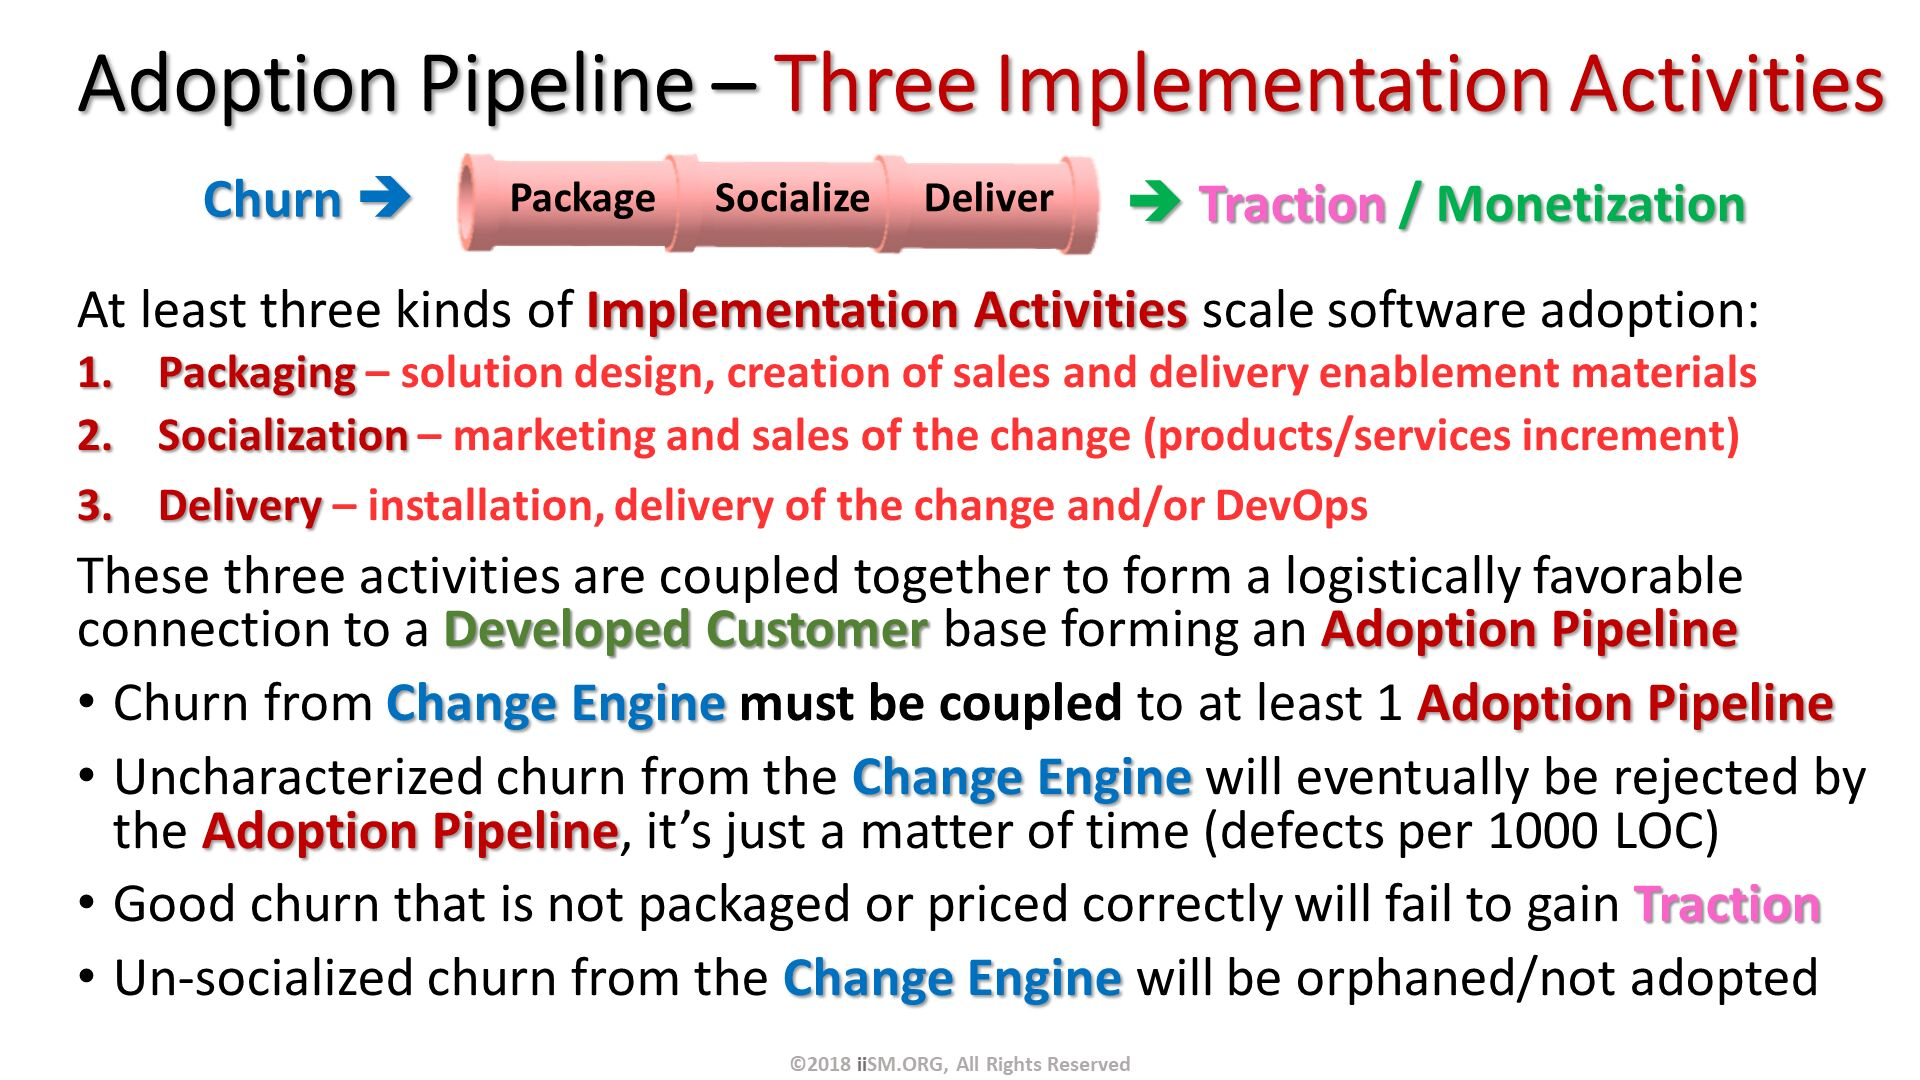 Adoption Pipeline – Three Implementation Activities. At least three kinds of Implementation Activities scale software adoption: Packaging – solution design, creation of sales and delivery enablement materials Socialization – marketing and sales of the change (products/services increment) Delivery – installation, delivery of the change and/or DevOps These three activities are coupled together to form a logistically favorable connection to a Developed Customer base forming an Adoption Pipeline Churn from Change Engine must be coupled to at least 1 Adoption Pipeline Uncharacterized churn from the Change Engine will eventually be rejected by the Adoption Pipeline, it's just a matter of time (defects per 1000 LOC) Good churn that is not packaged or priced correctly will fail to gain Traction Un-socialized churn from the Change Engine will be orphaned/not adopted  .  Traction / Monetization. Churn . ©2018 iiSM.ORG, All Rights Reserved.